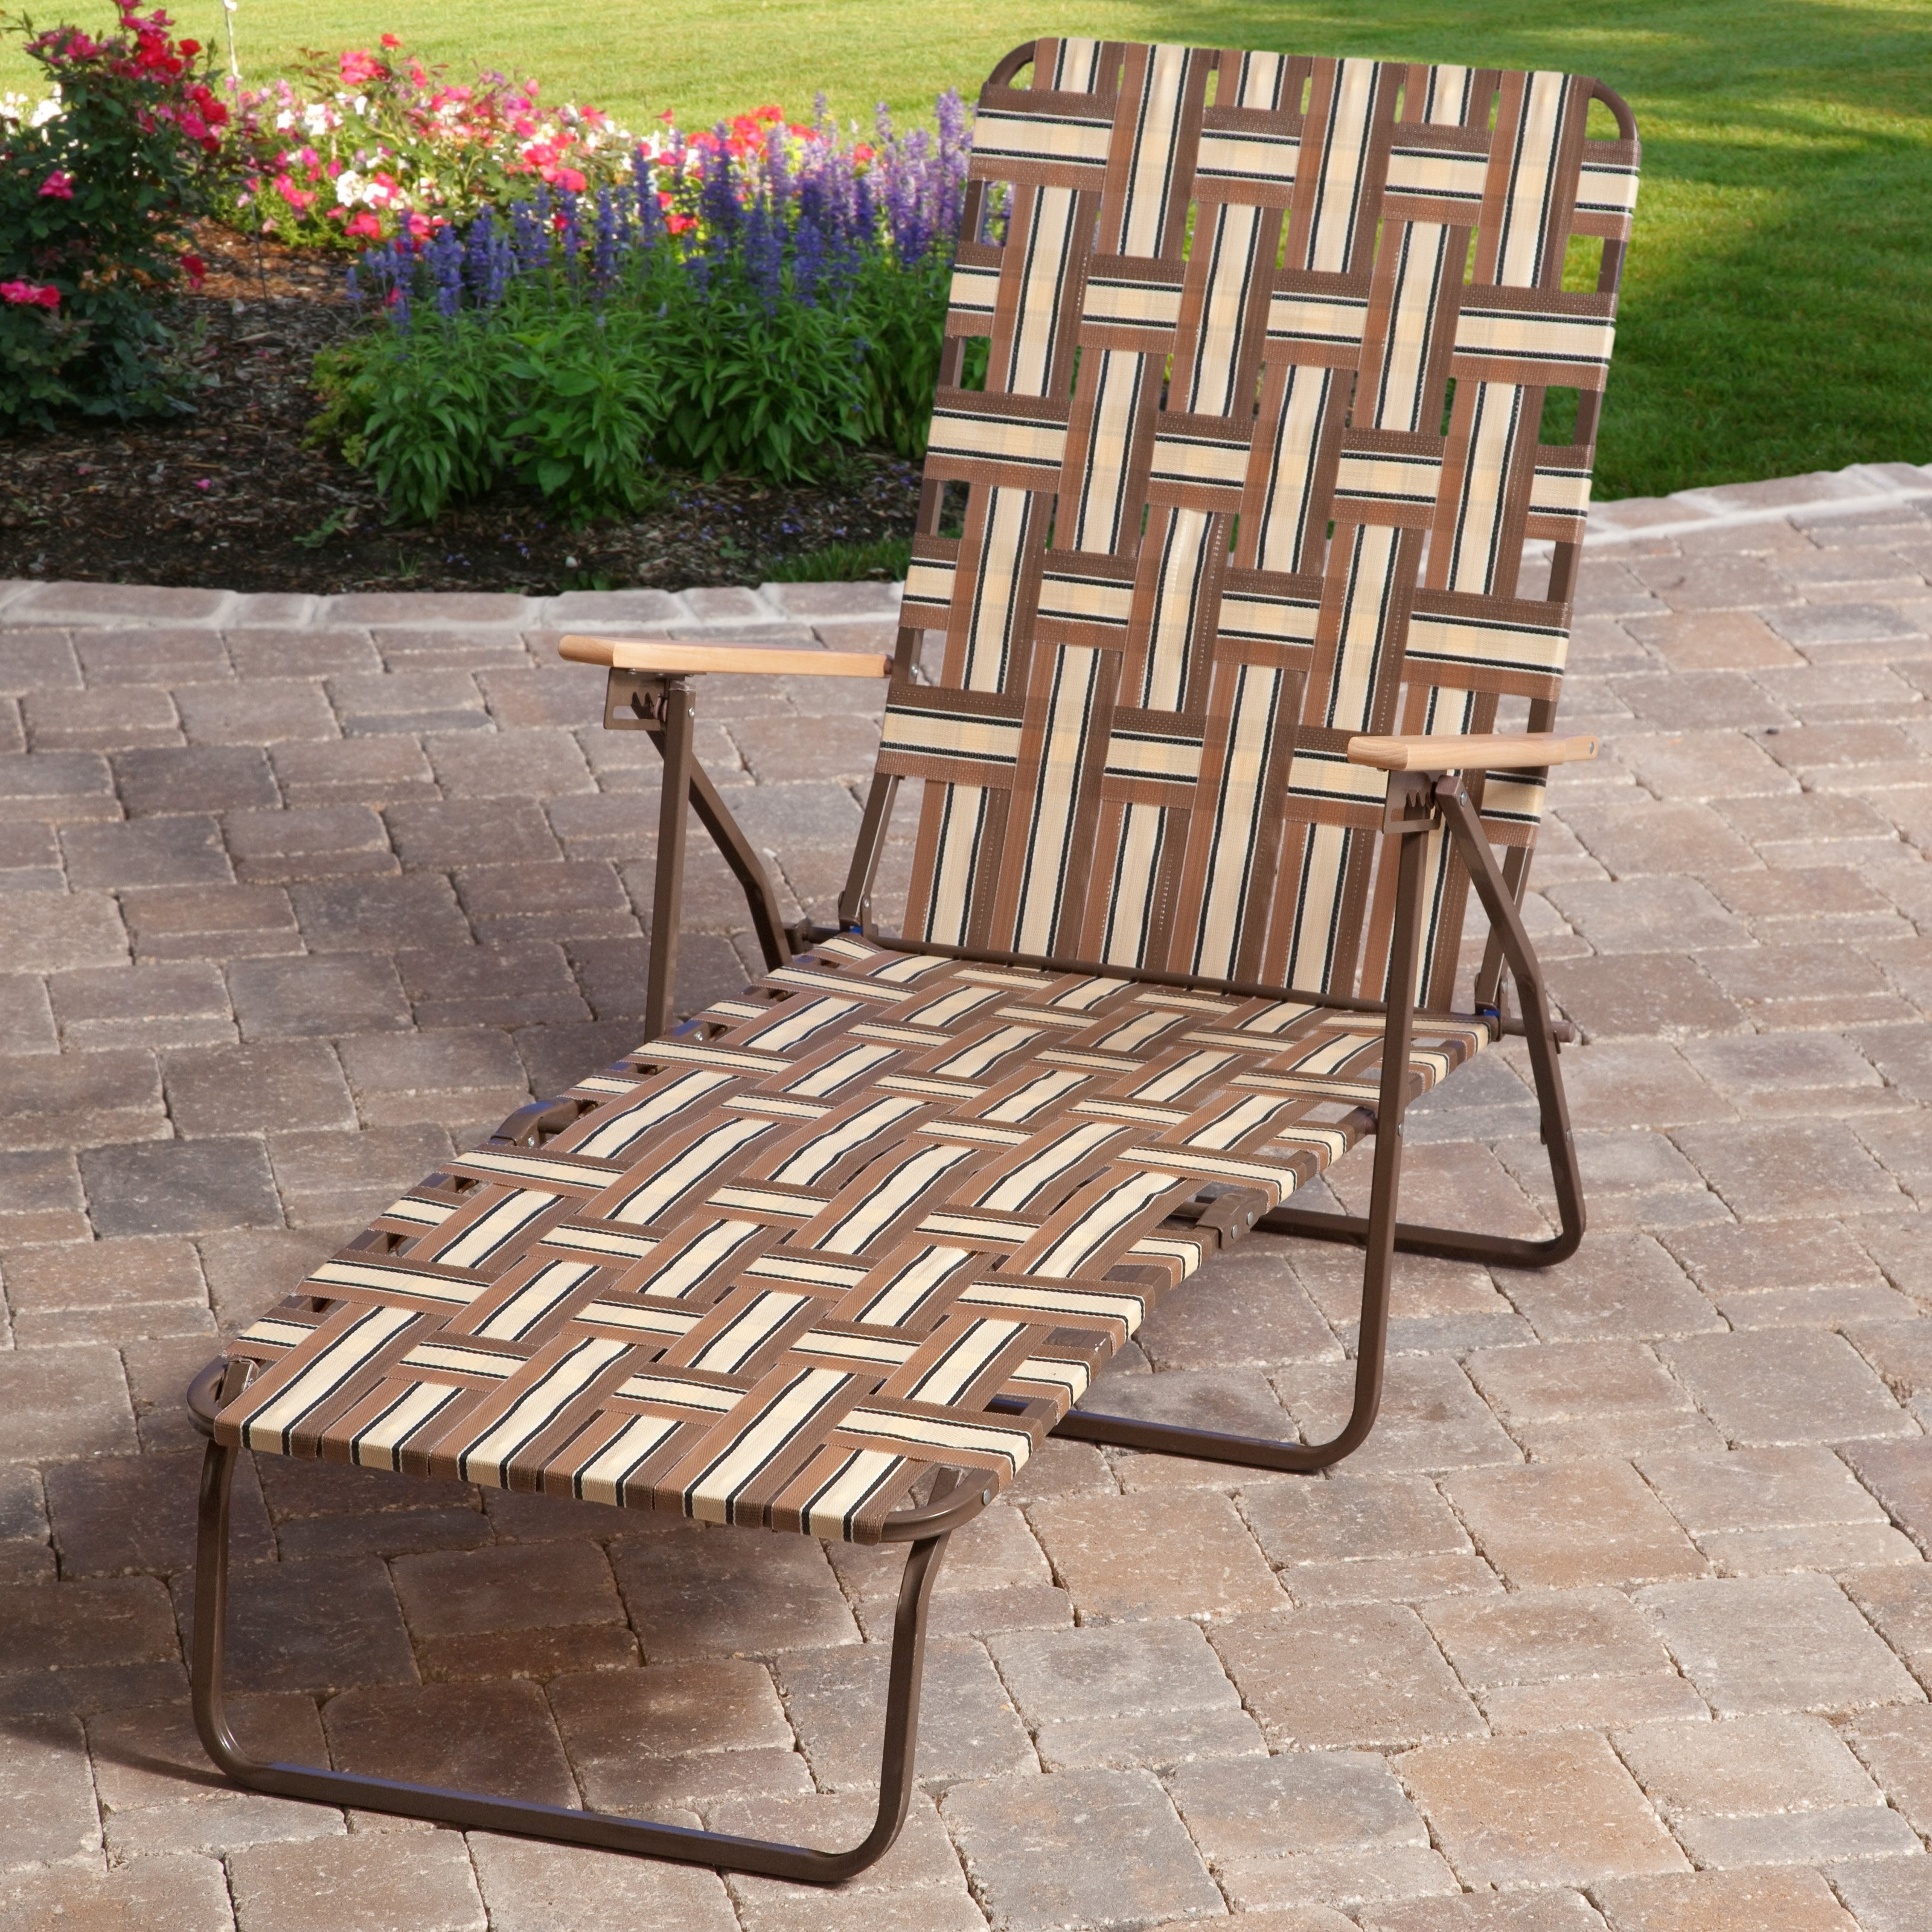 Foldable Chaise Lounge Outdoor Chairs Throughout Latest Rio Deluxe Folding Web Chaise Lounge – Walmart (View 5 of 15)